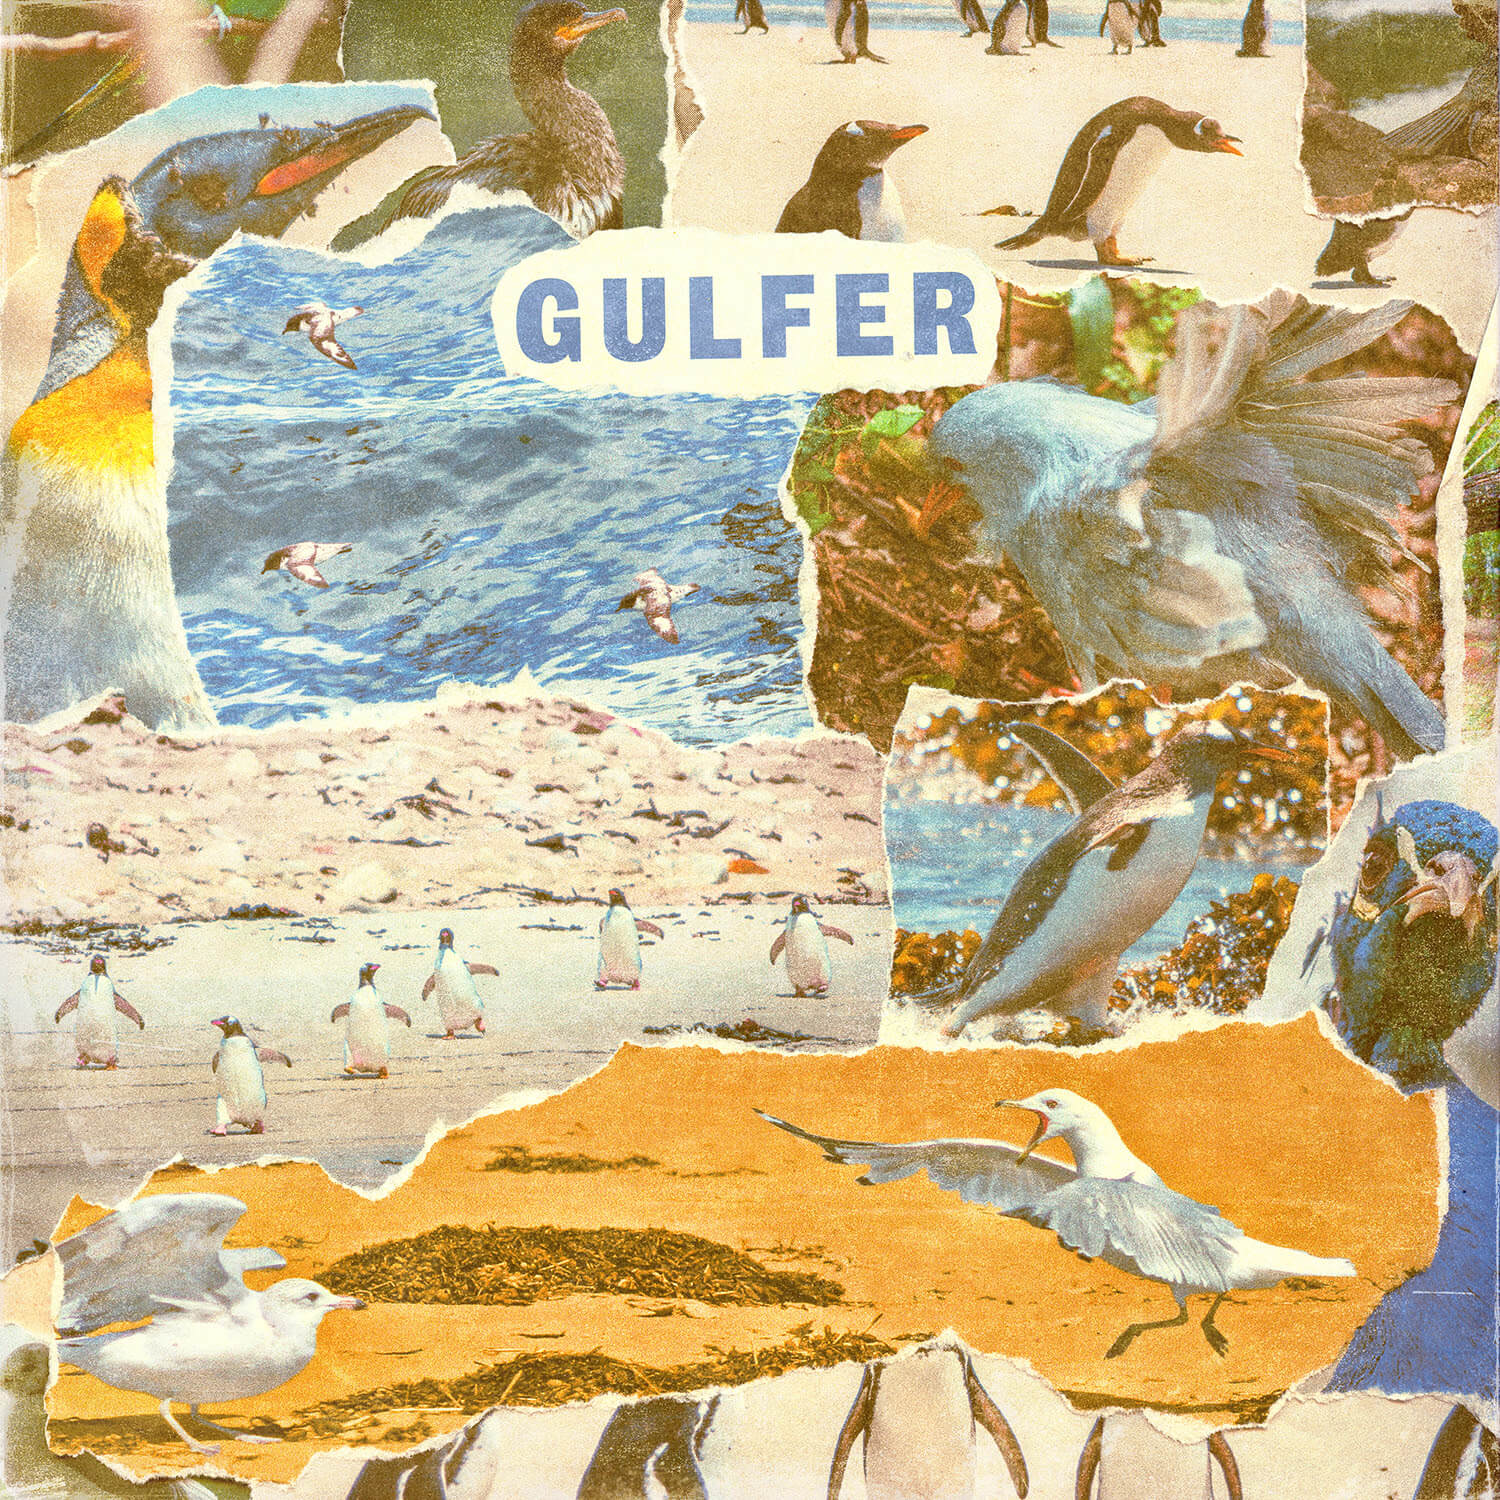 Gulfer by Gulfer album review by Adam Williams.